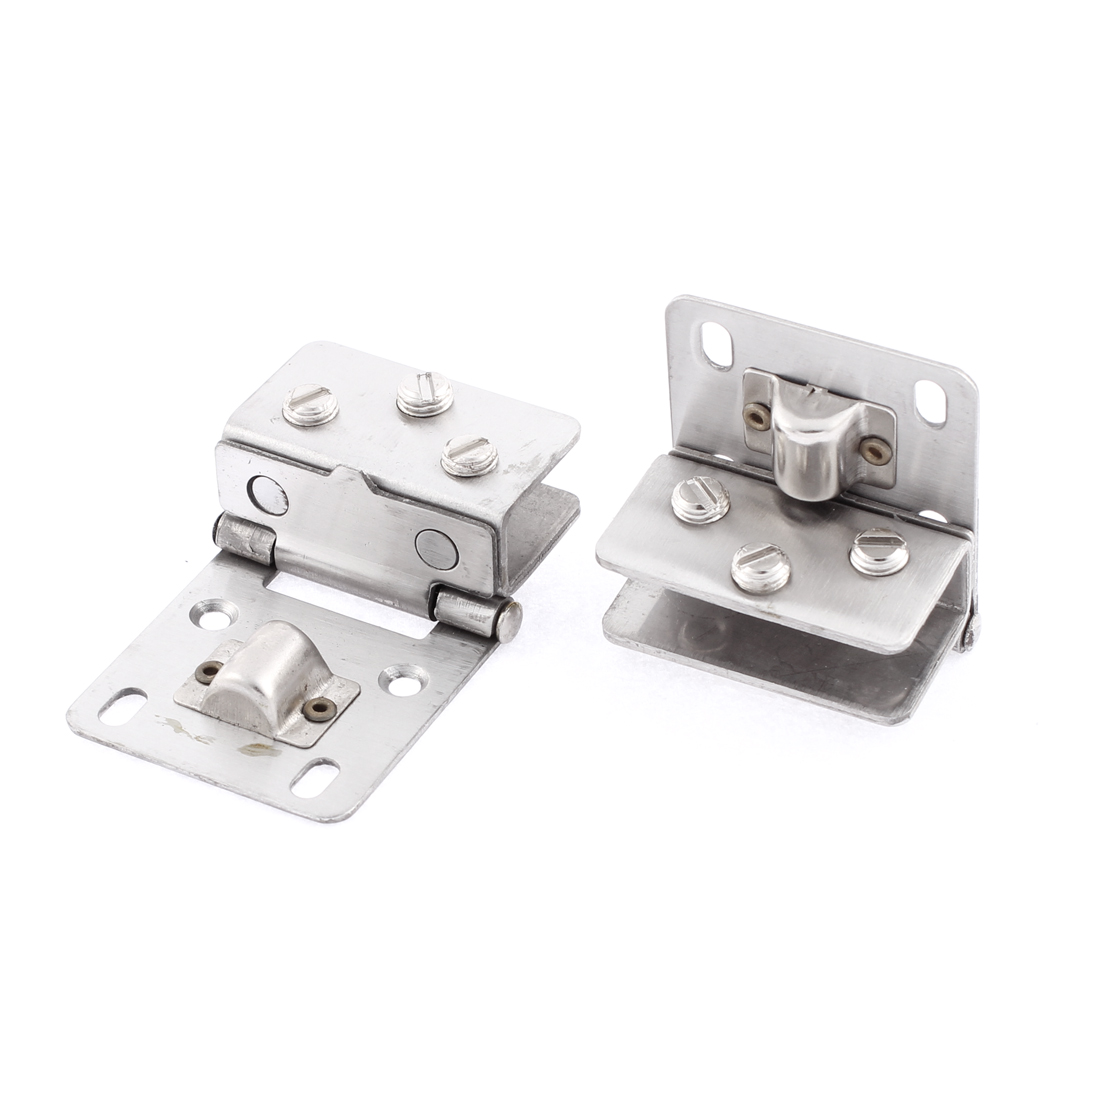 2 Pcs 11mm Thickness Glass Wall Mounted Fitting Clip Door Hinge Clamp